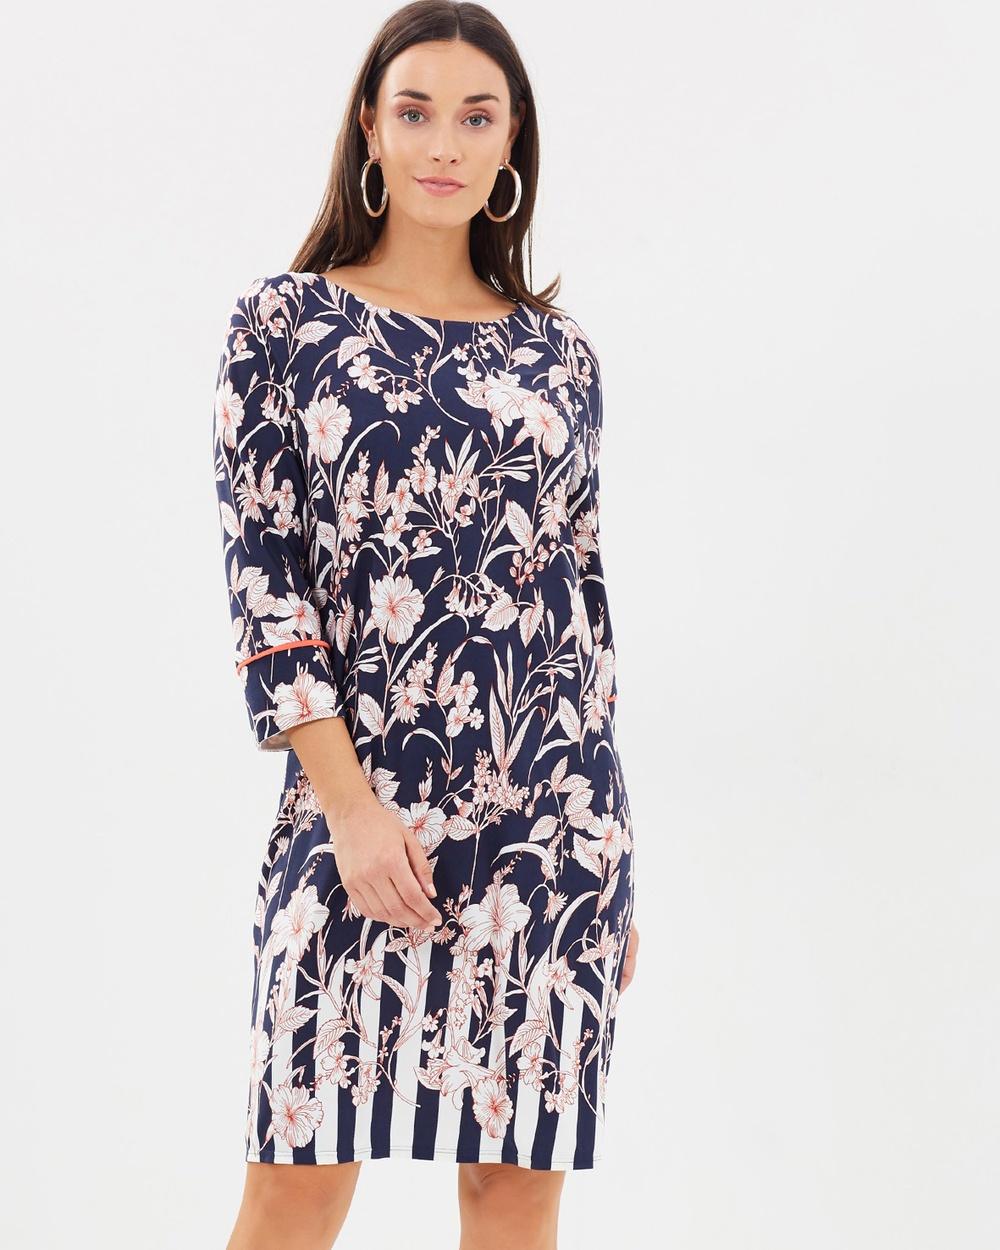 Photo of Wallis Wallis Stripe Border Floral Tunic Printed Dresses Navy Blue Stripe Border Floral Tunic - For on-trend womenswear with a classic twist, look to British fashion label Wallis. The Wallis woman is confident, fashionable and thoughtful in her approach to personal style. The label creates clothing to match a modern, 24/7 lifestyle, with feminine, chic designs that can take you from office to evening and weekend with ease. Our model is wearing a size UK 8 dress